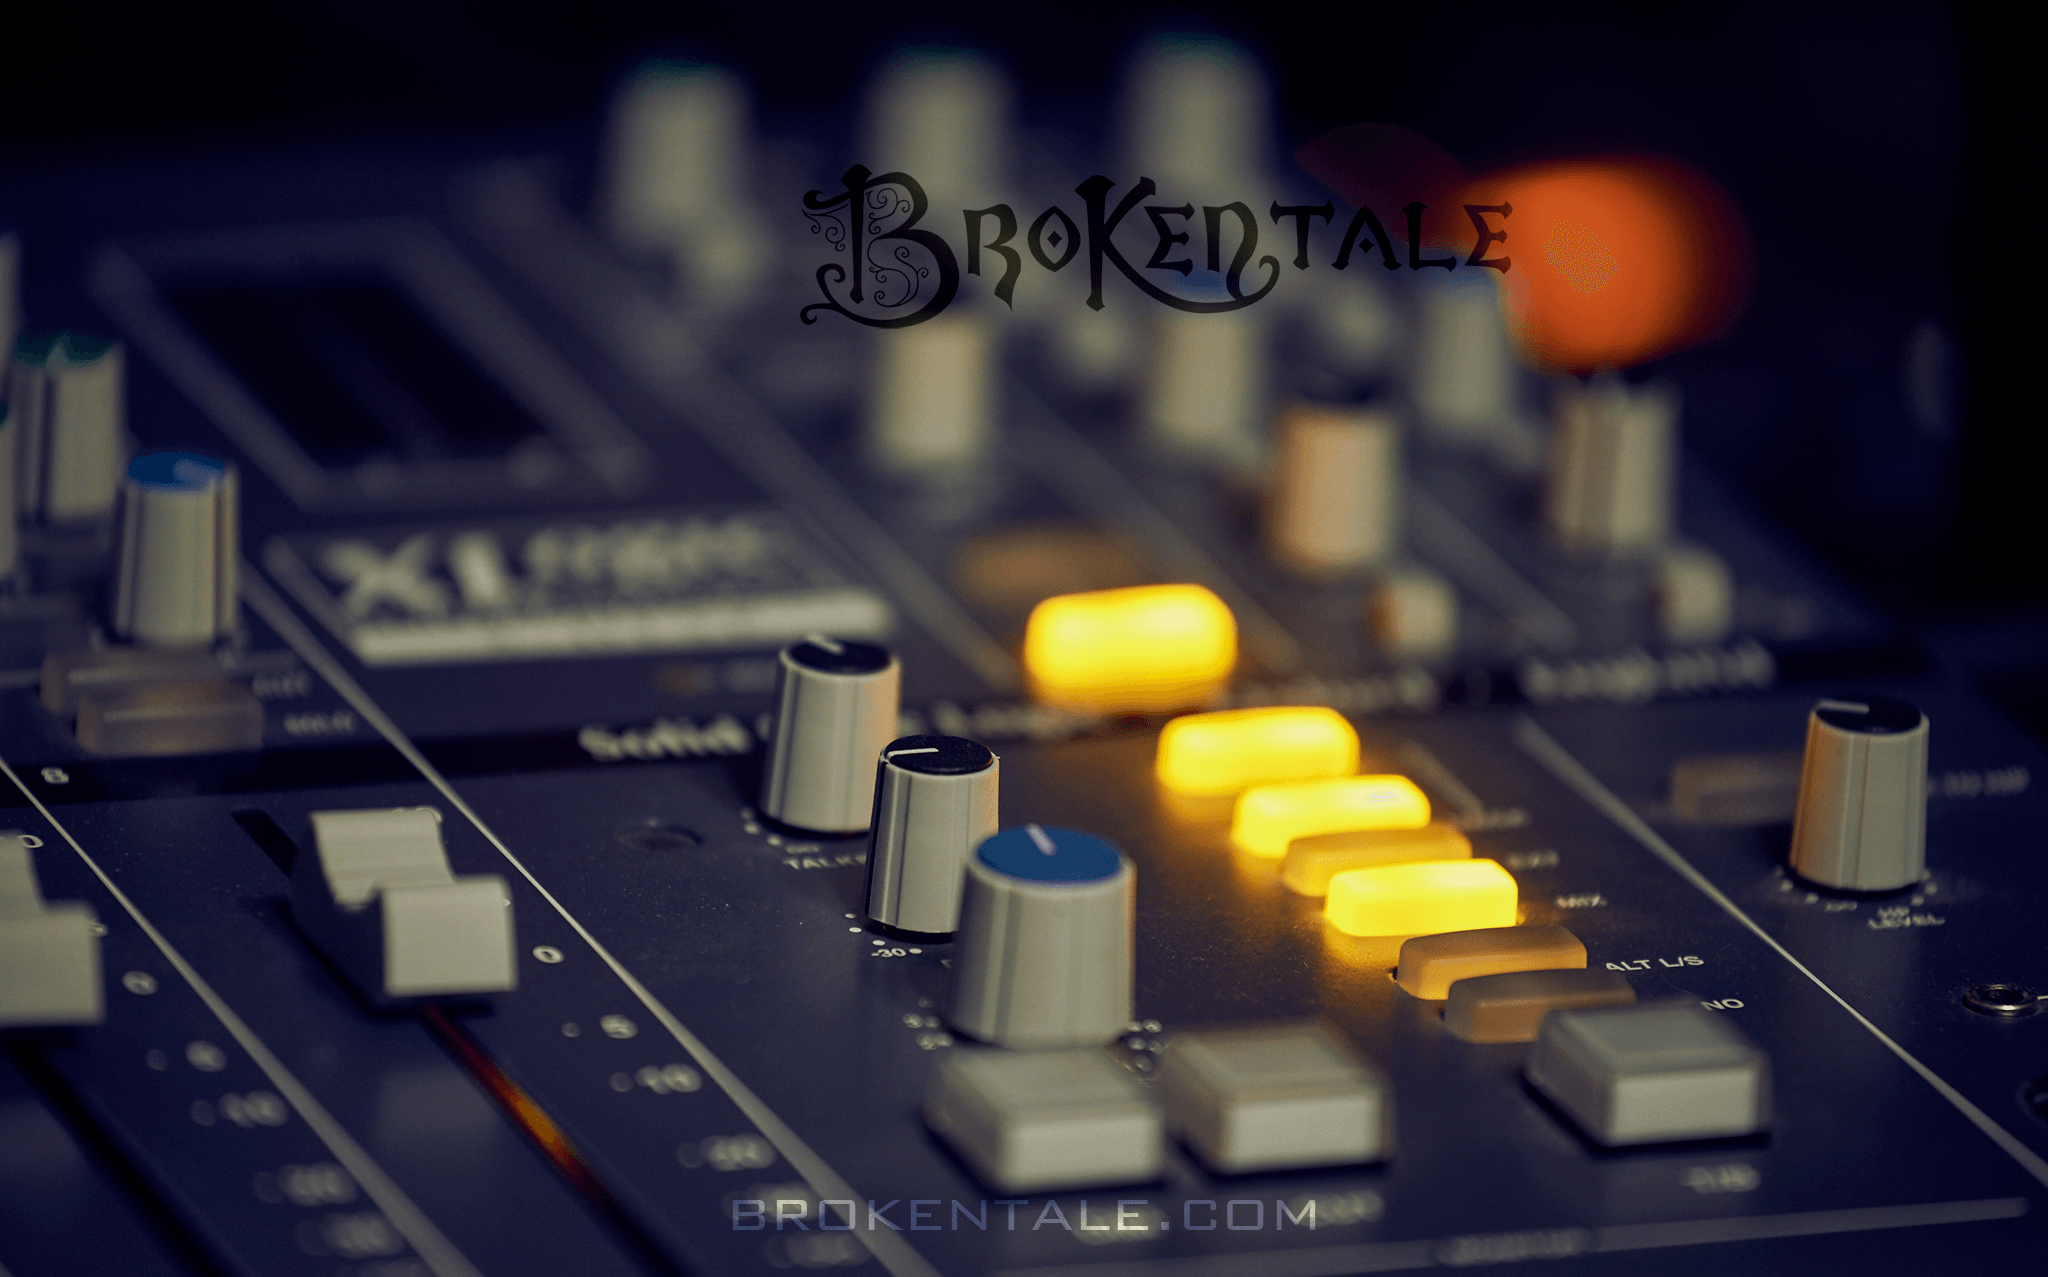 BrokenTale Studio Gear - SSL Xdesk